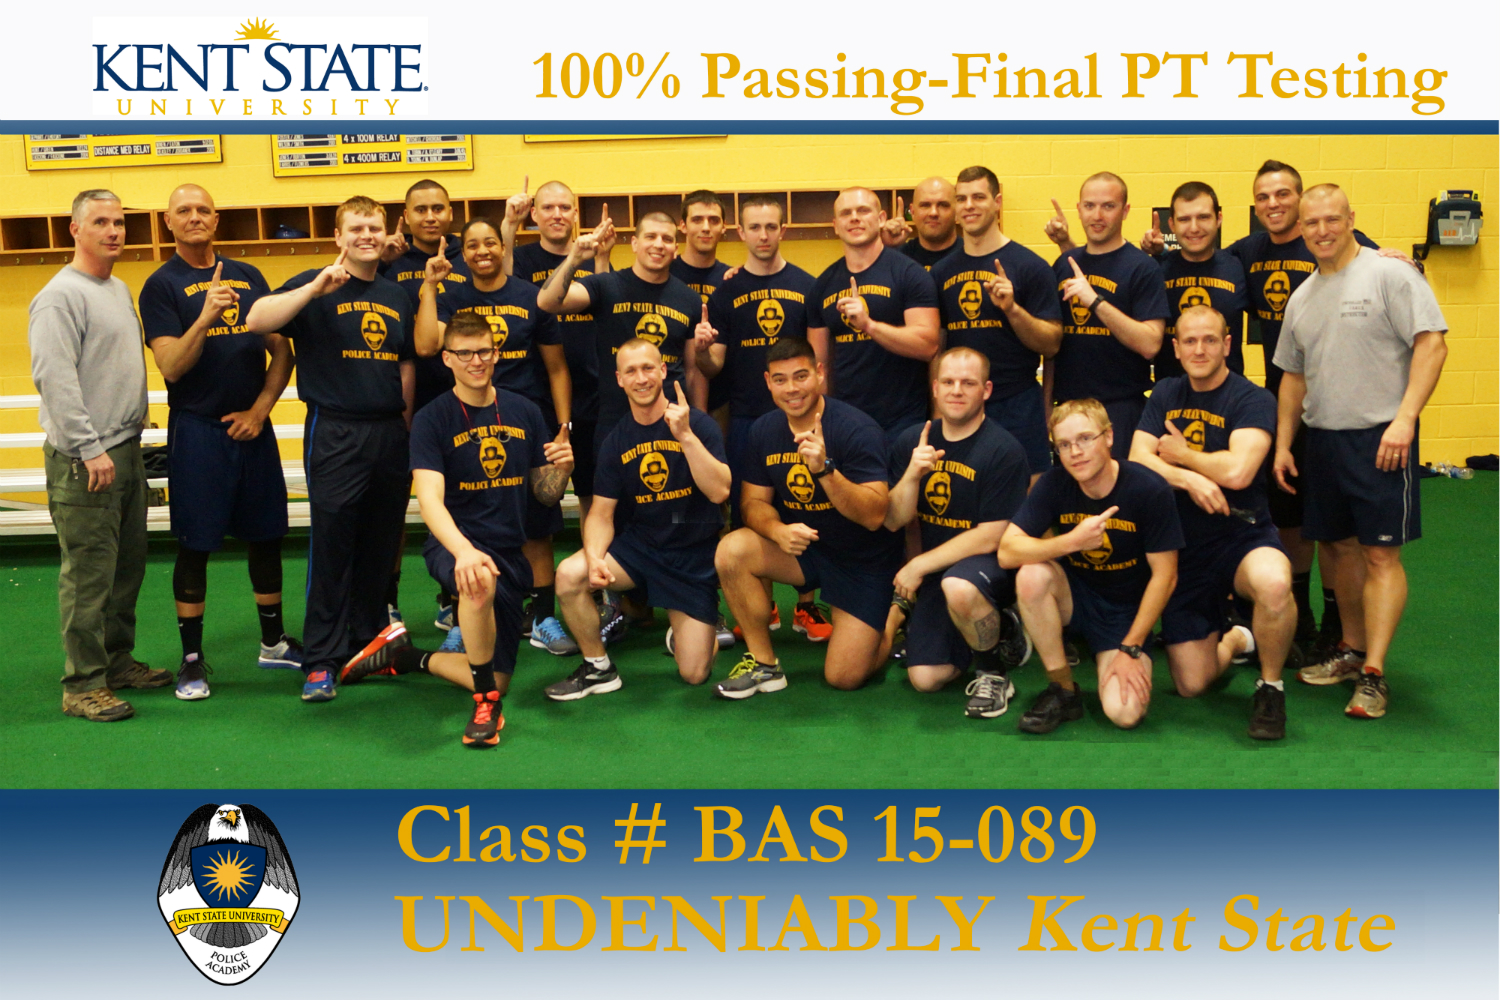 Congratulations BAS 15-089 100% Physical Fitness Test